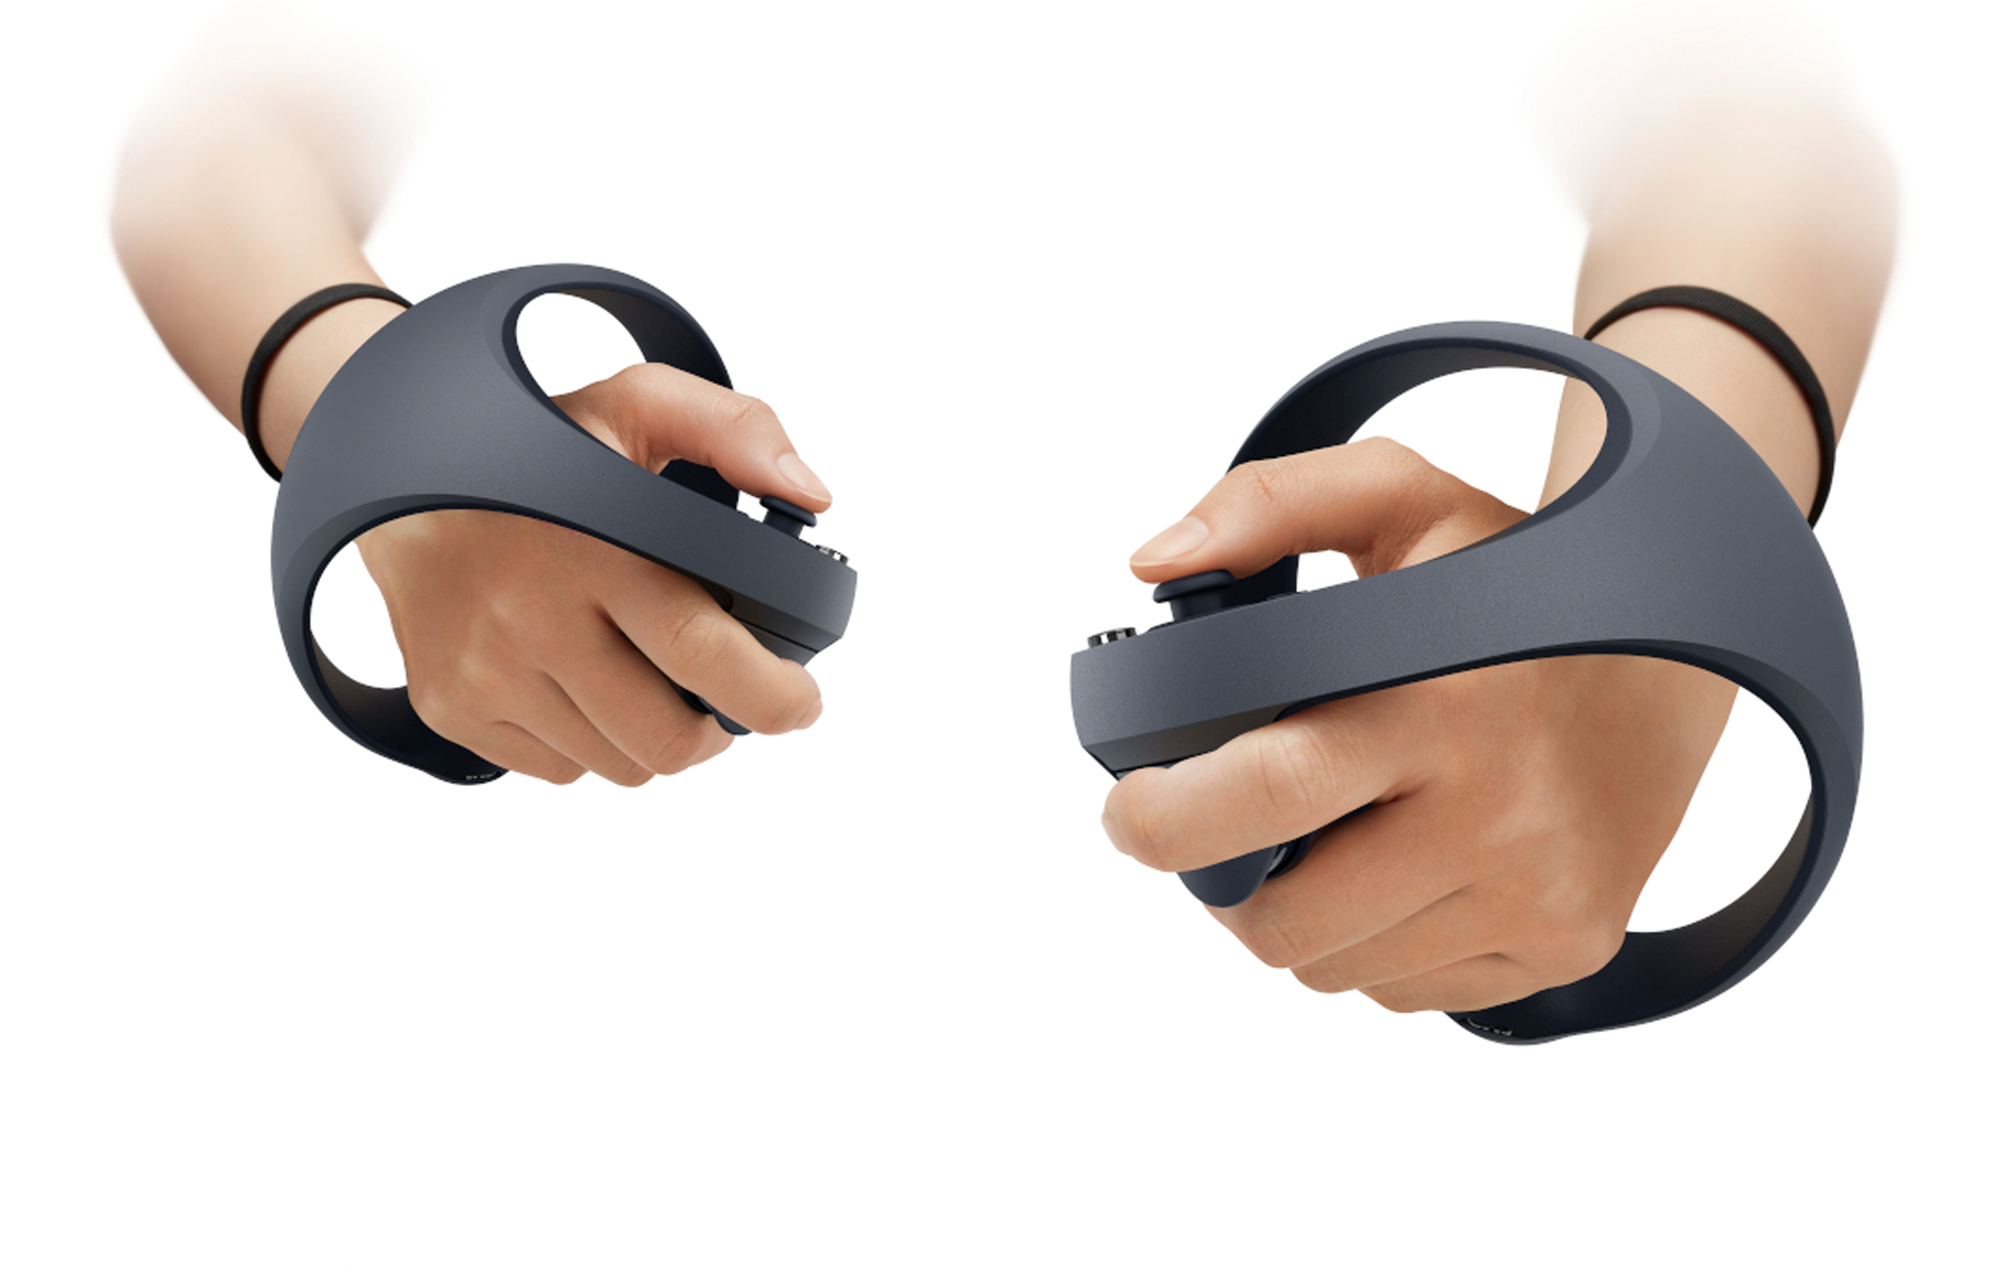 Sony reveals new details for the PS5 VR controller